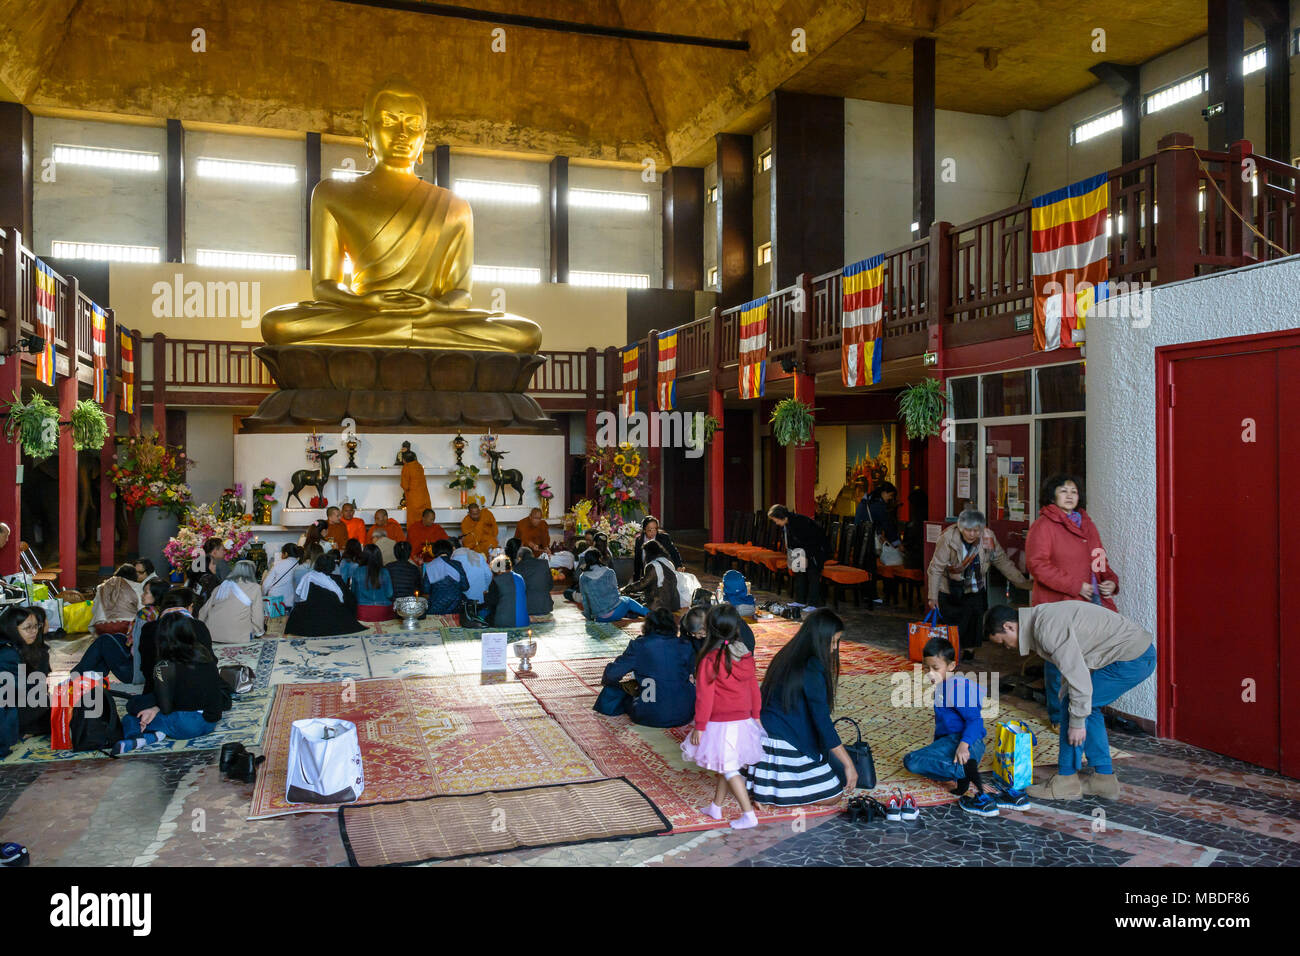 Upon the Khmer New Year celebration, people from the southeast asian community attend the ceremony and pray Buddha in the Great Pagoda of Vincennes. Stock Photo